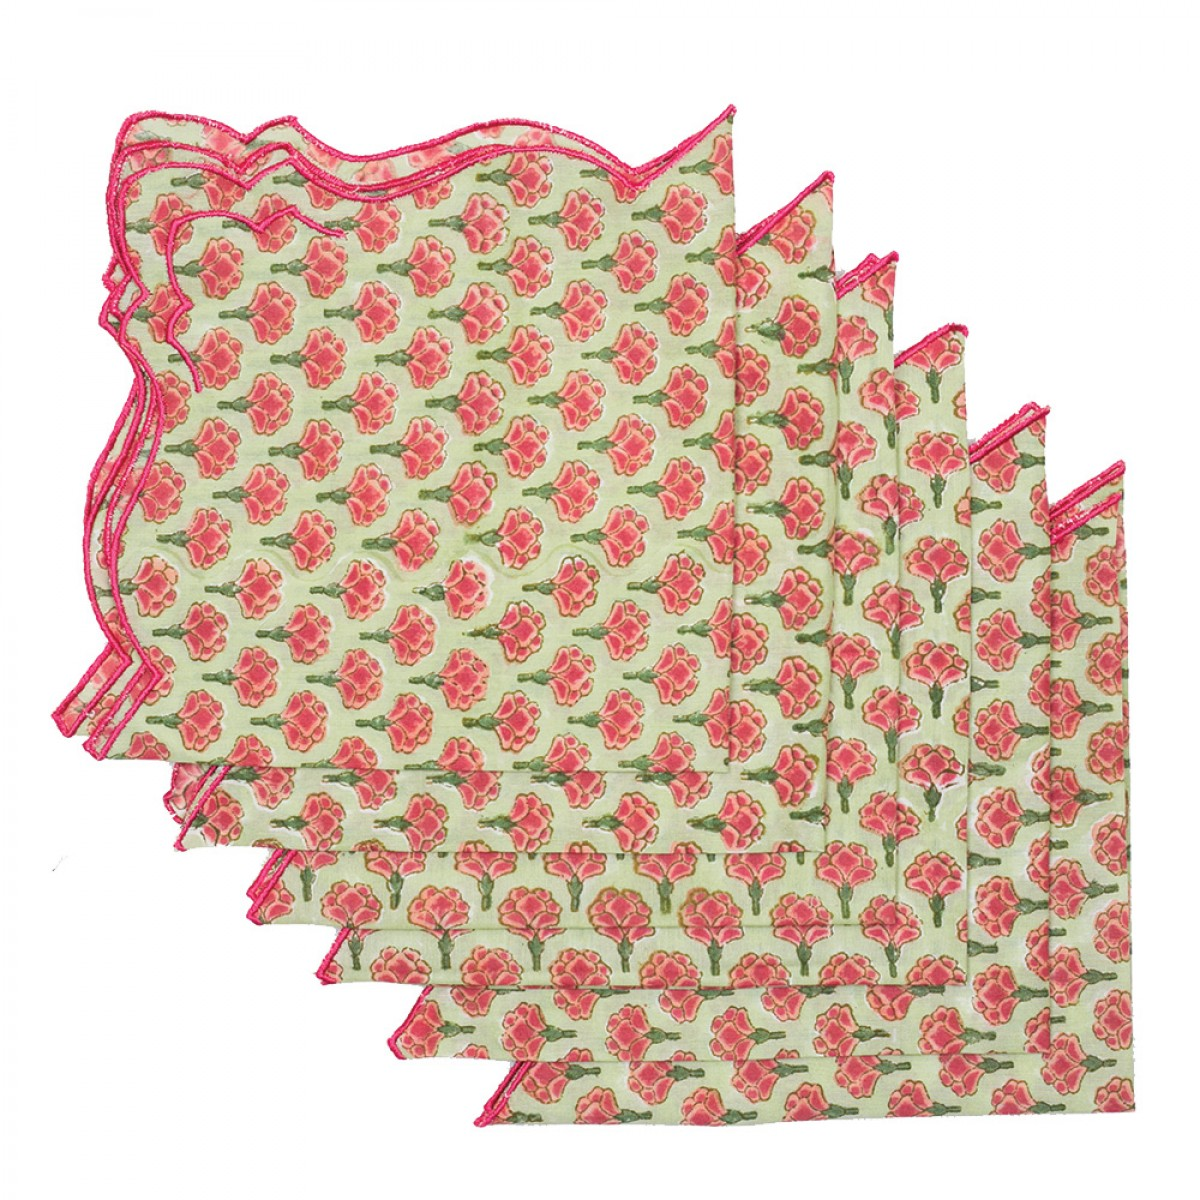 Cotton Scallop Embroidered Printed Napkin - Red & Olive (Set of 6)